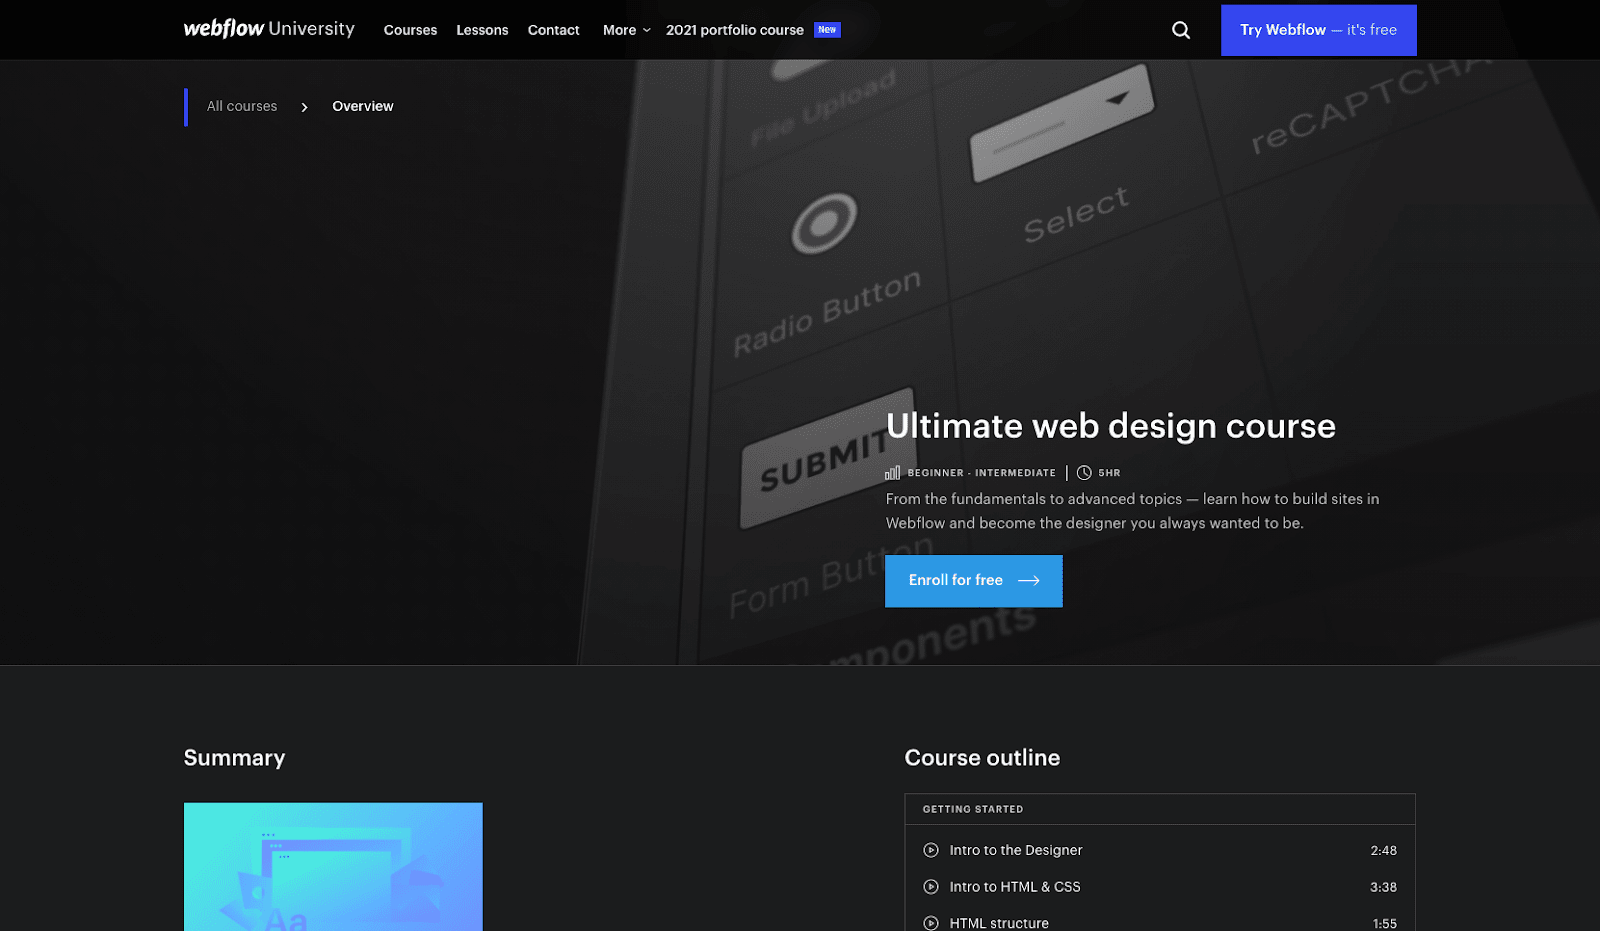 A screenshot of Webflow's website. Their free web design course page